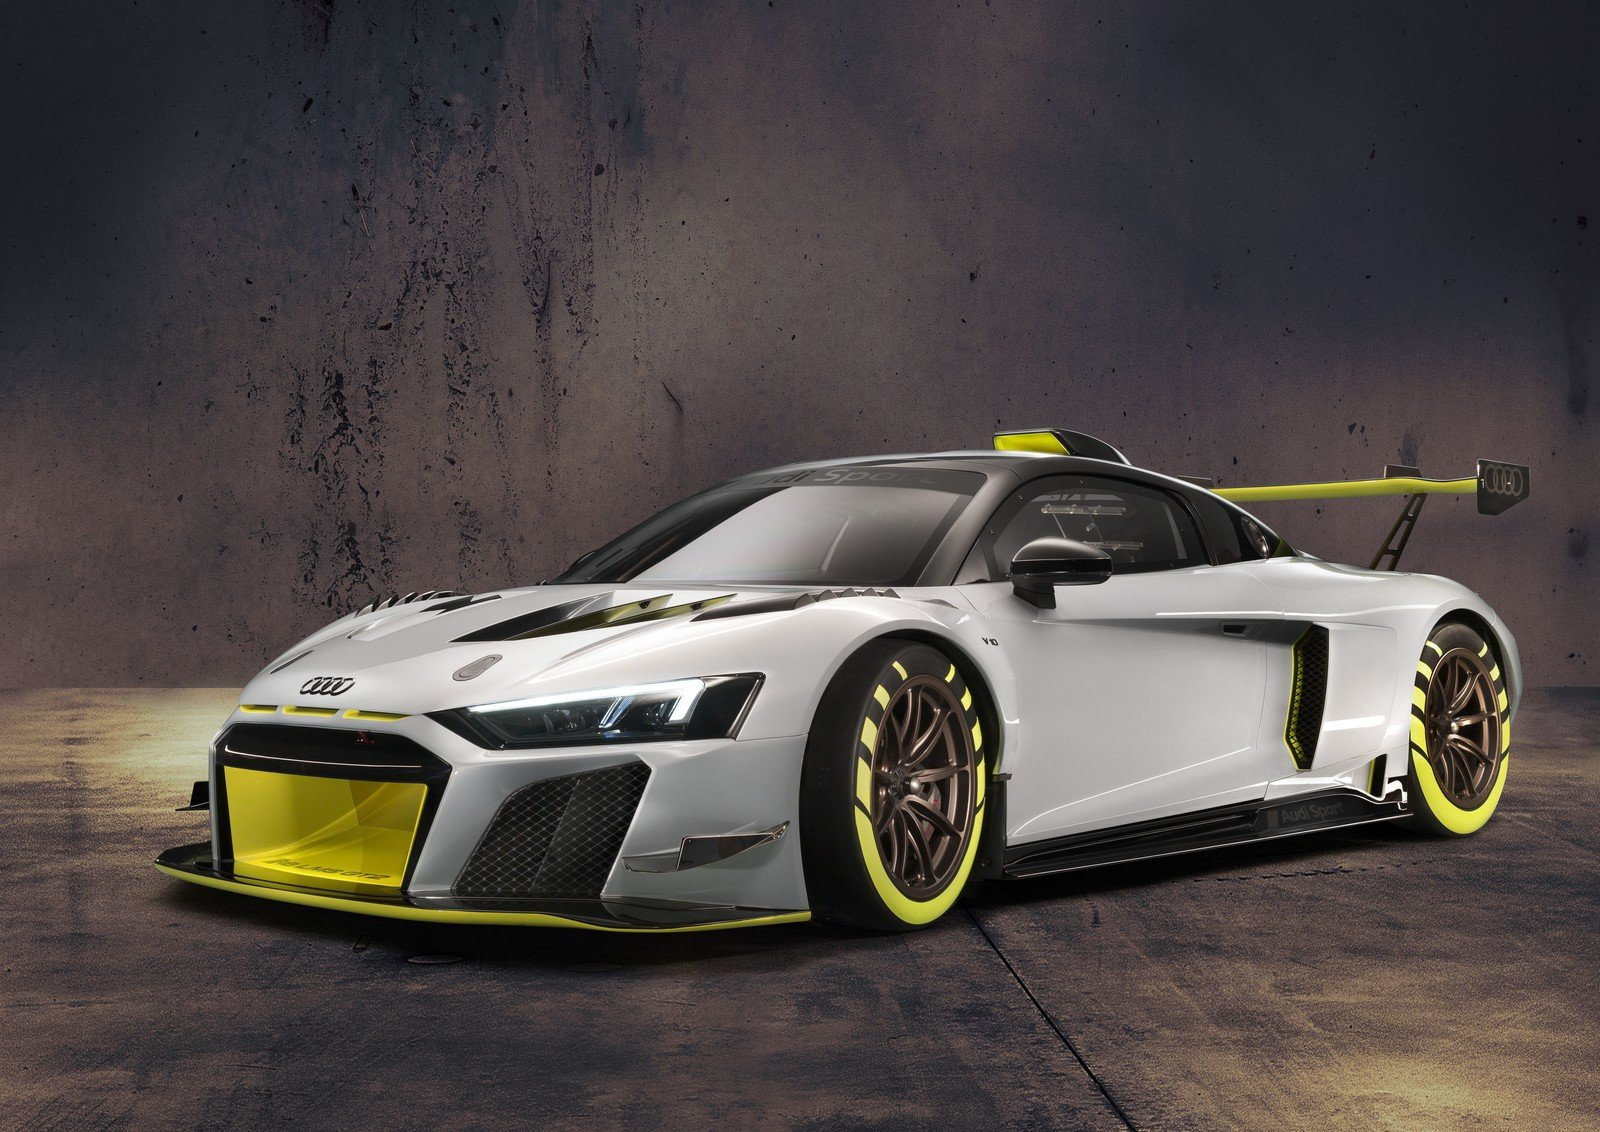 2020 audi r8 lms gt2 pictures  photos  wallpapers